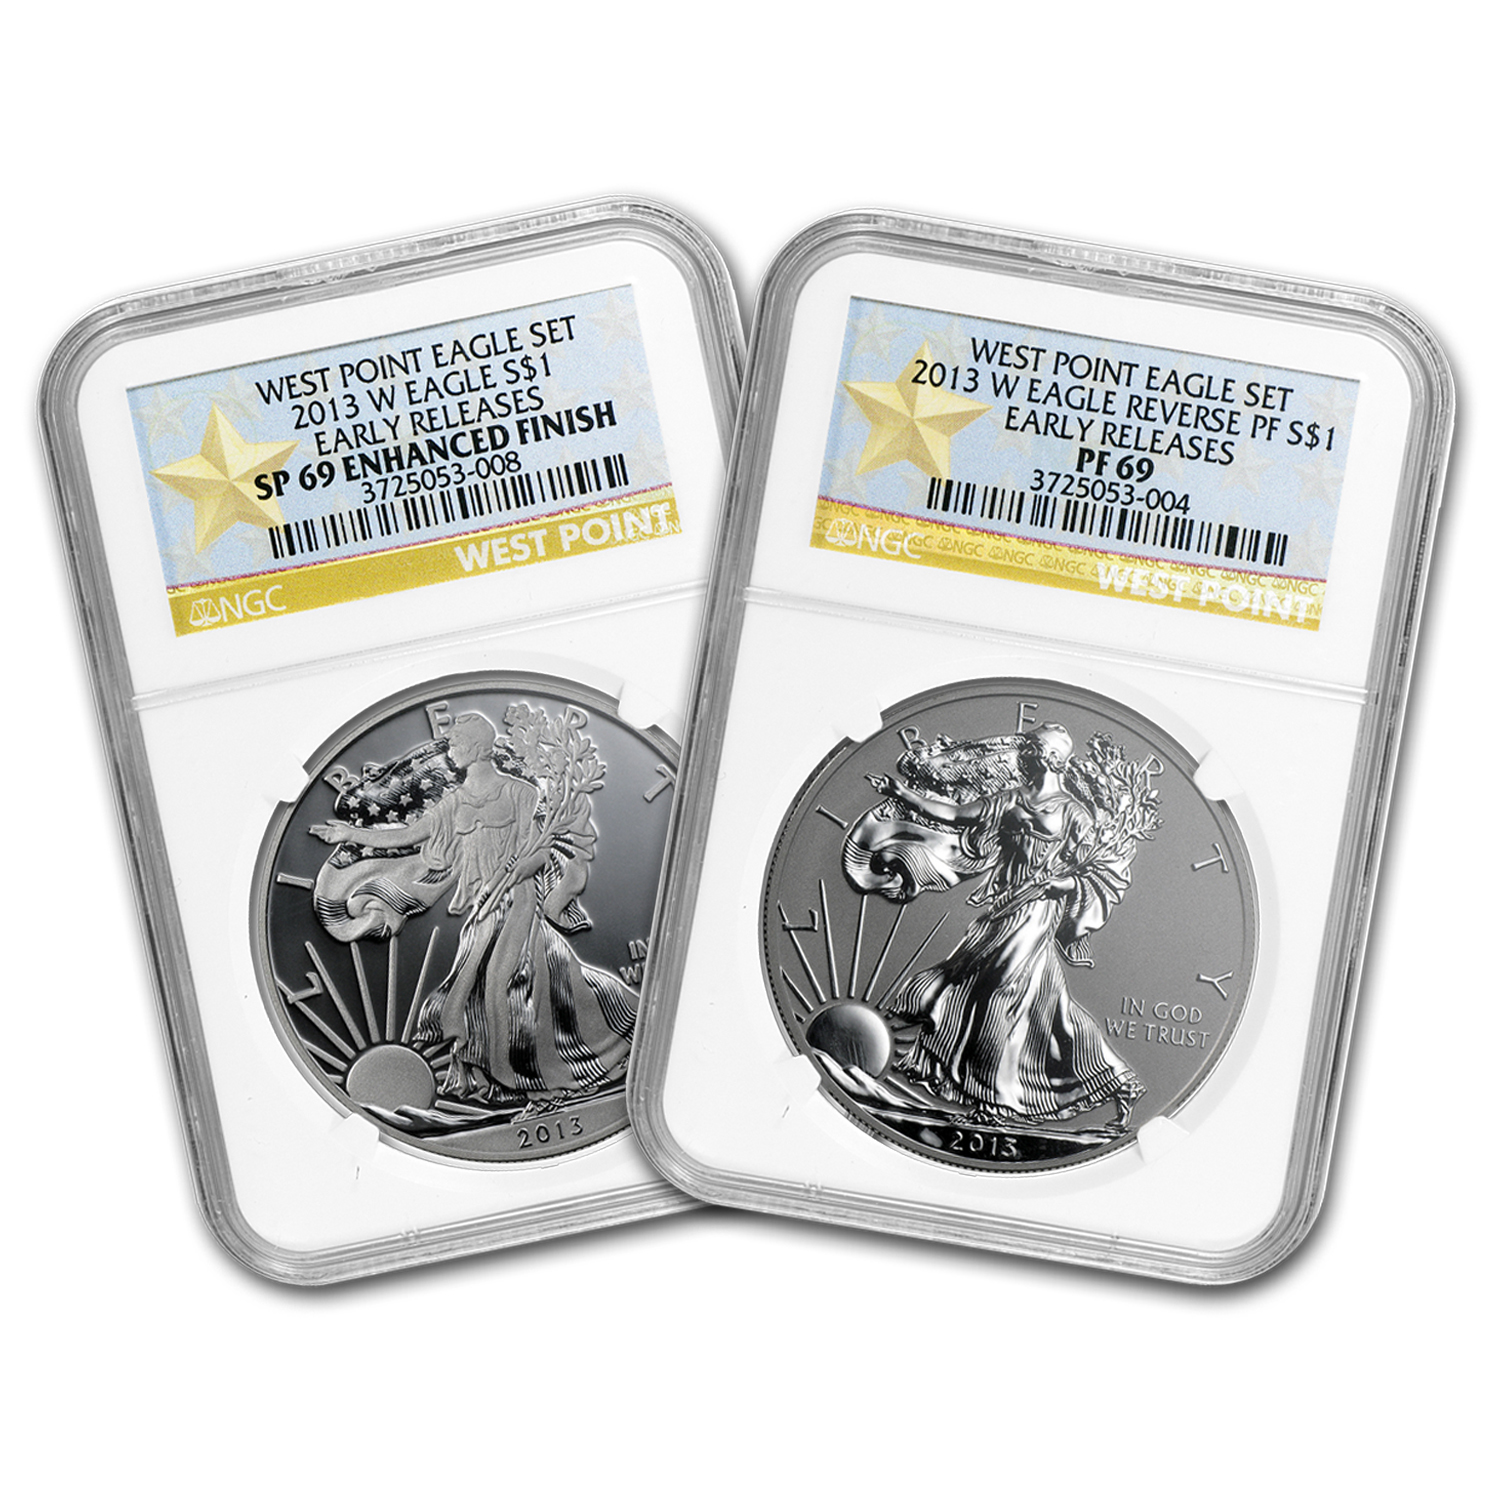 2013 American Silver Eagle West Point Set NGC 69 Early Releases